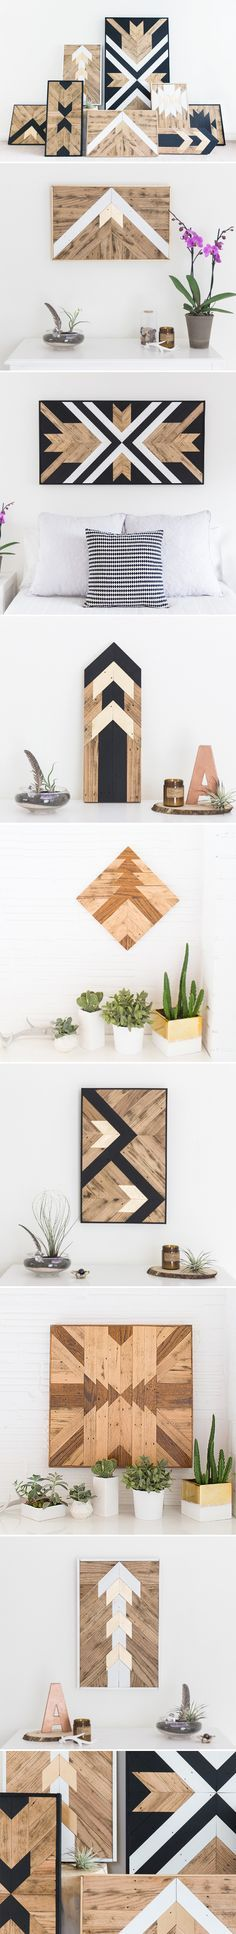 reclaimed wood (from an old oak floor in houston!) art pieces by bri land <3